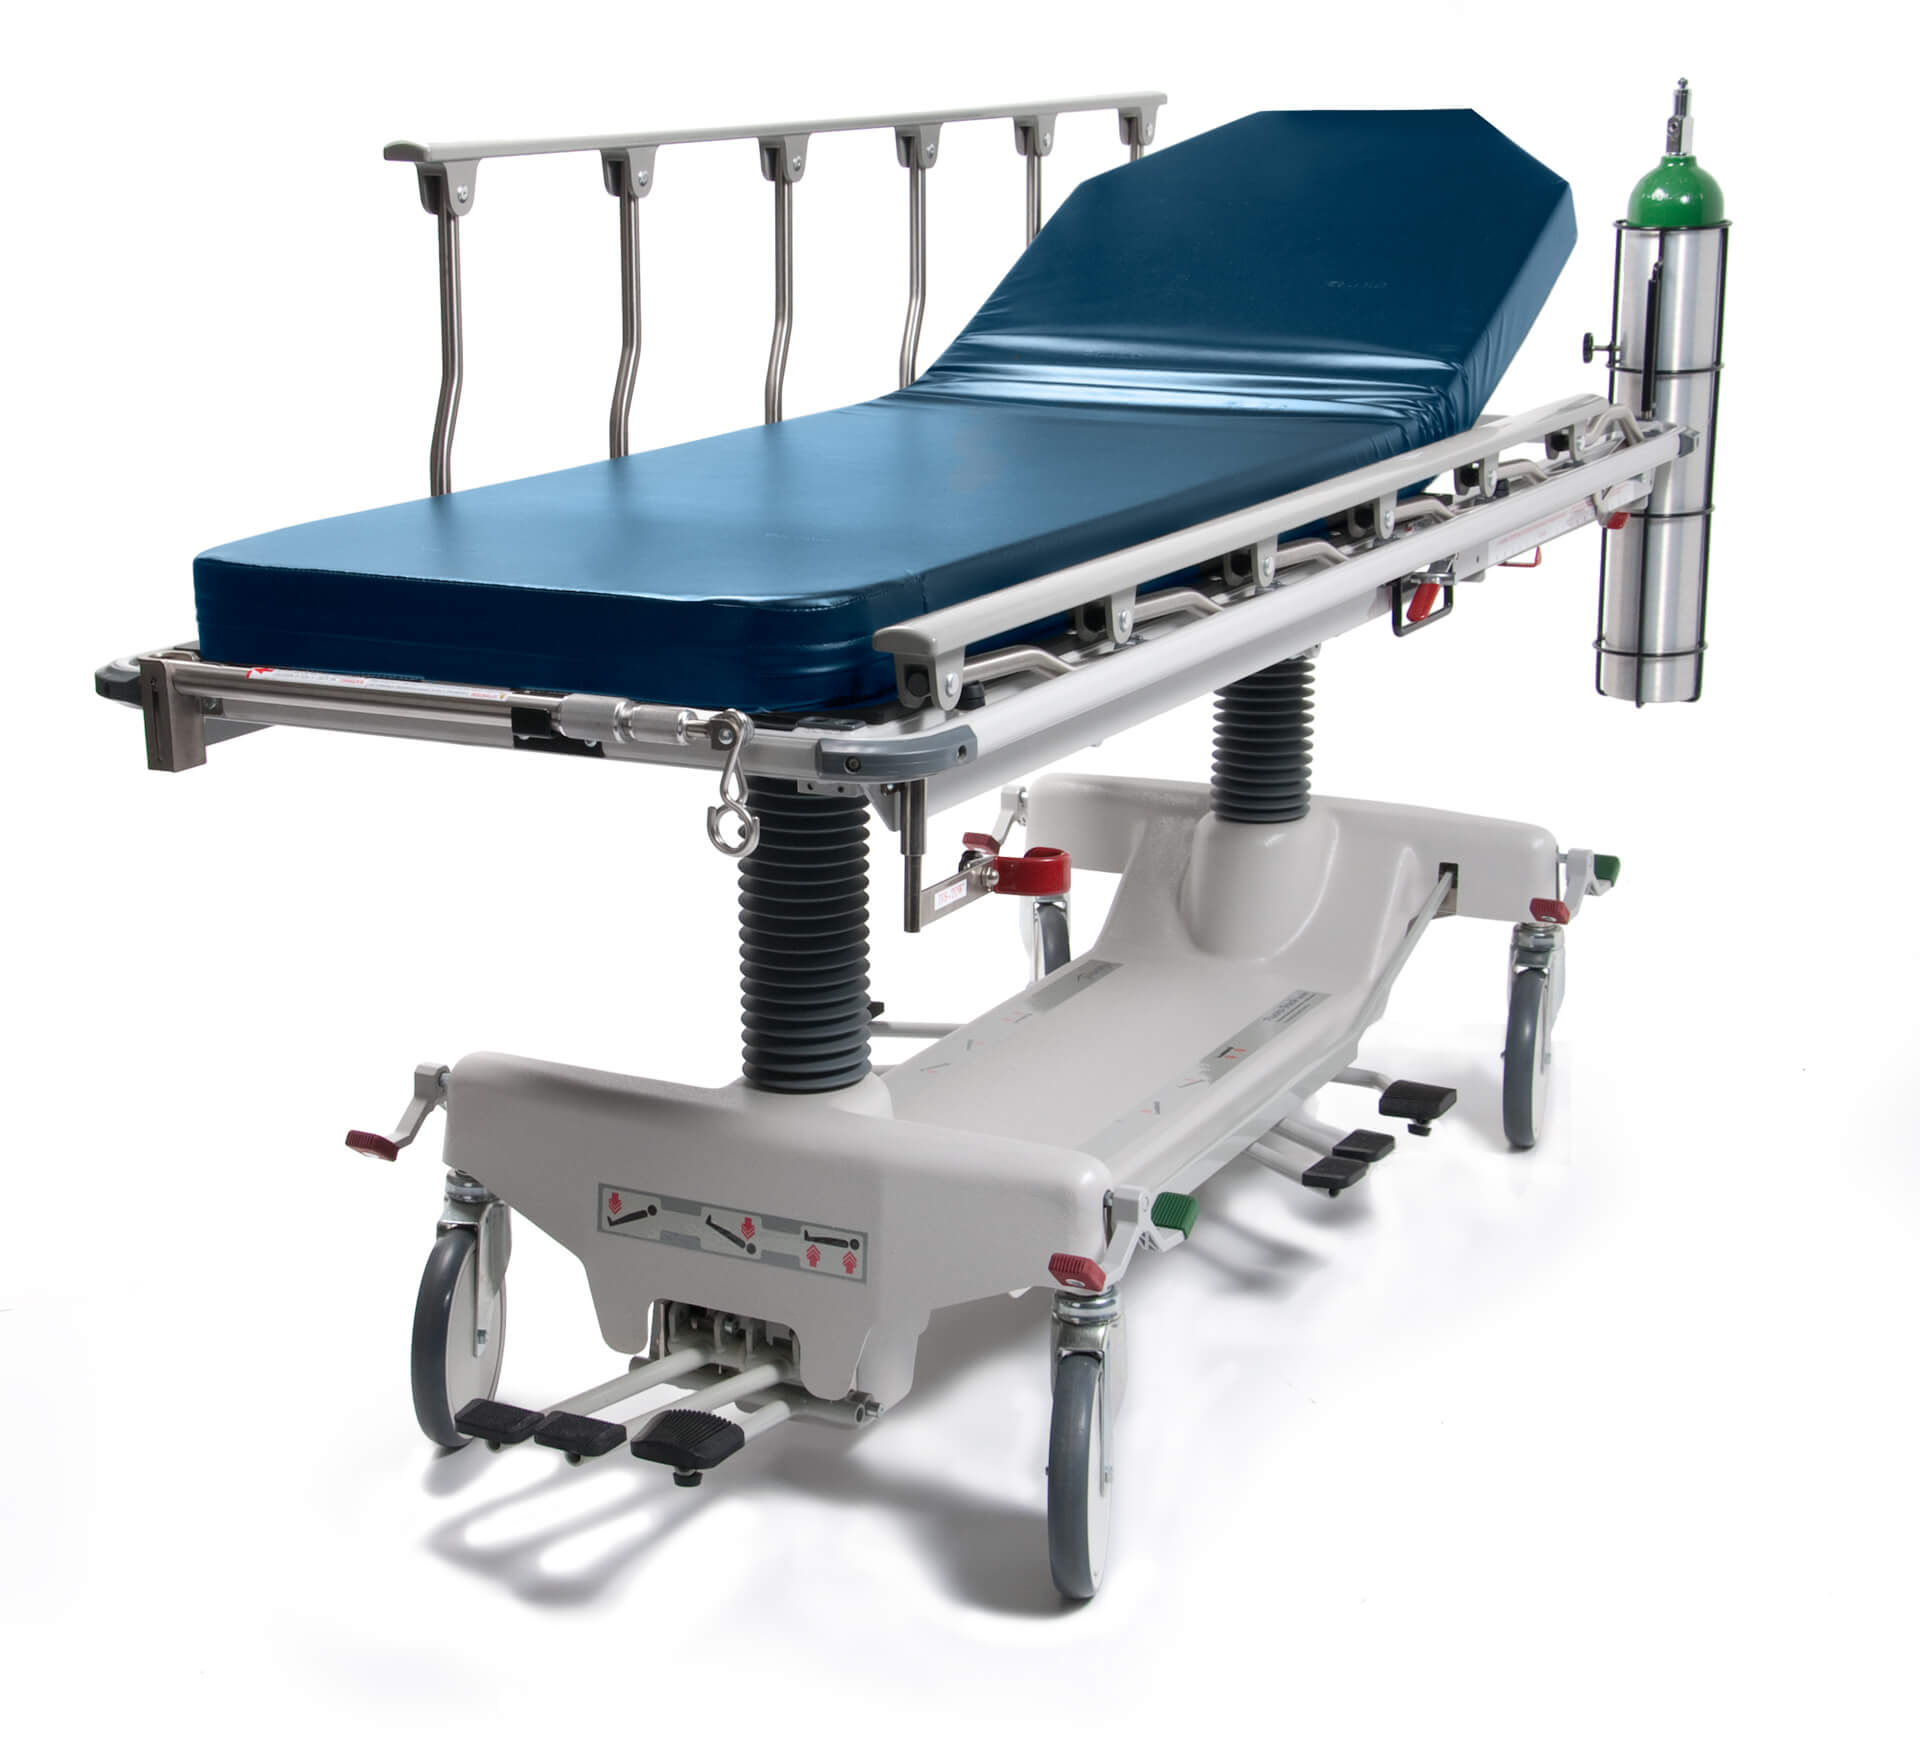 Flurooscopy Stretcher